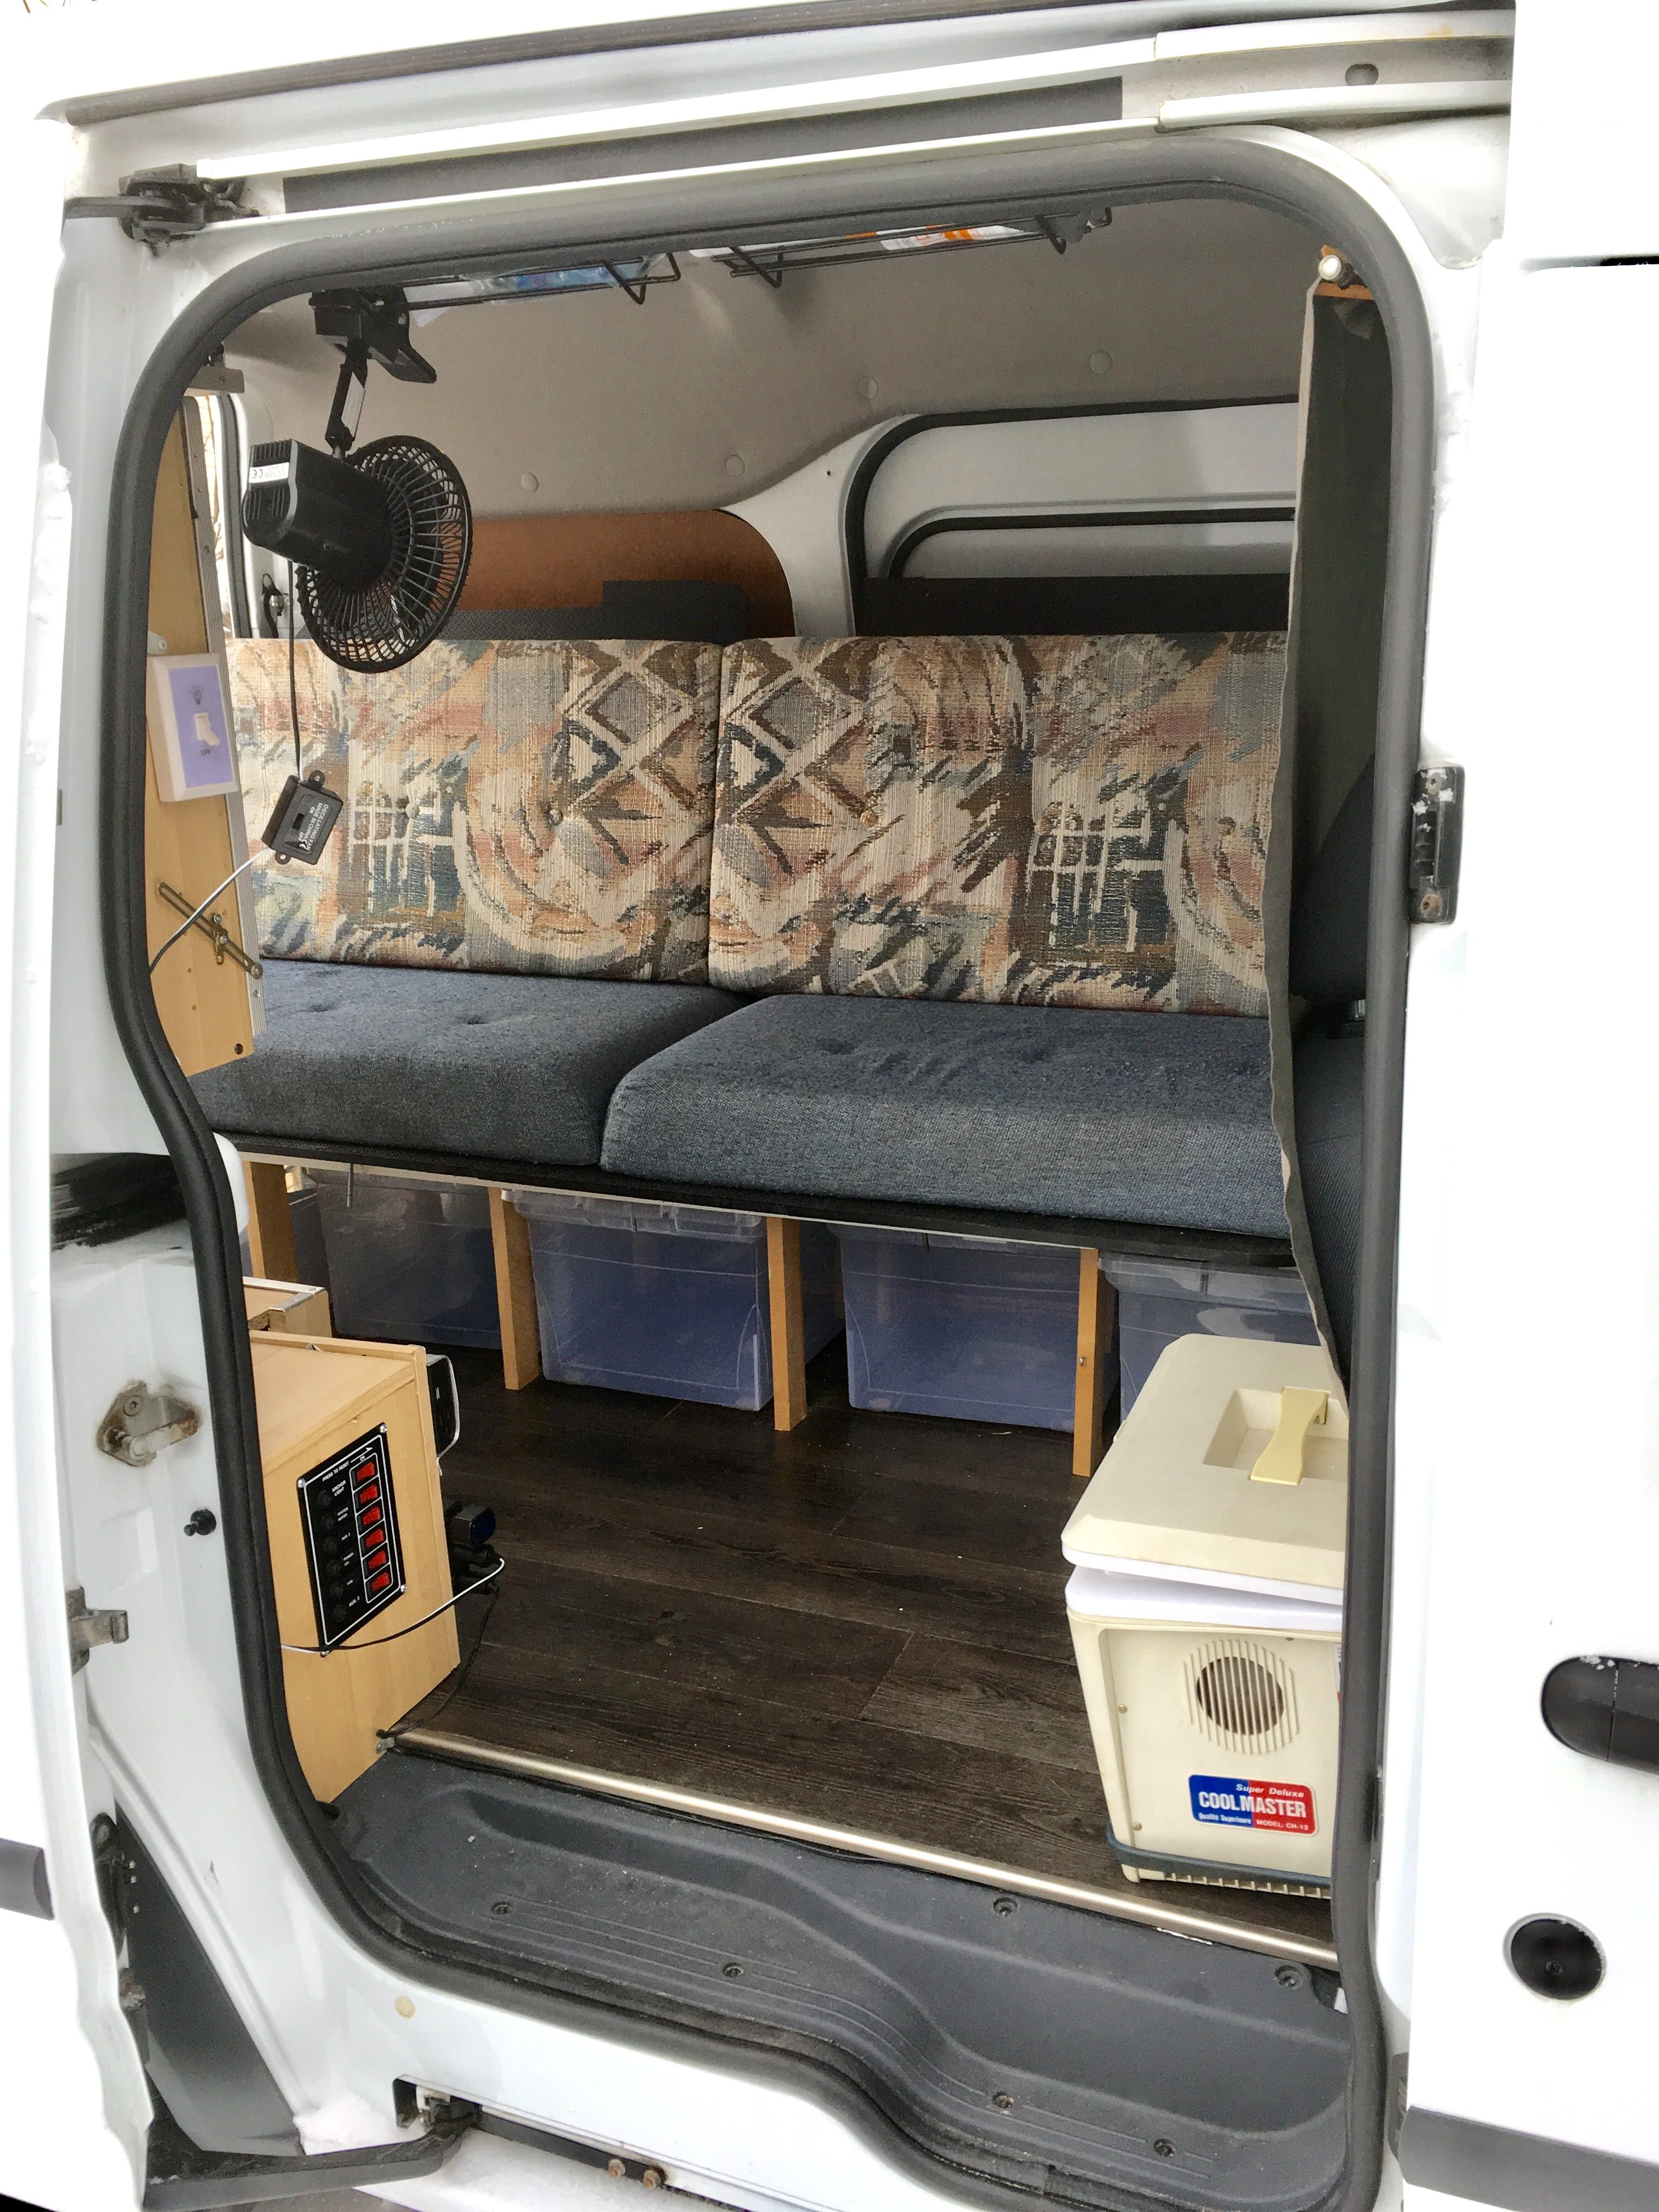 Pin By Judith Twitchell On My Ford Transit Connect Camper Project Ford Transit Connect Camper Ford Transit Camper Transit Connect Camper